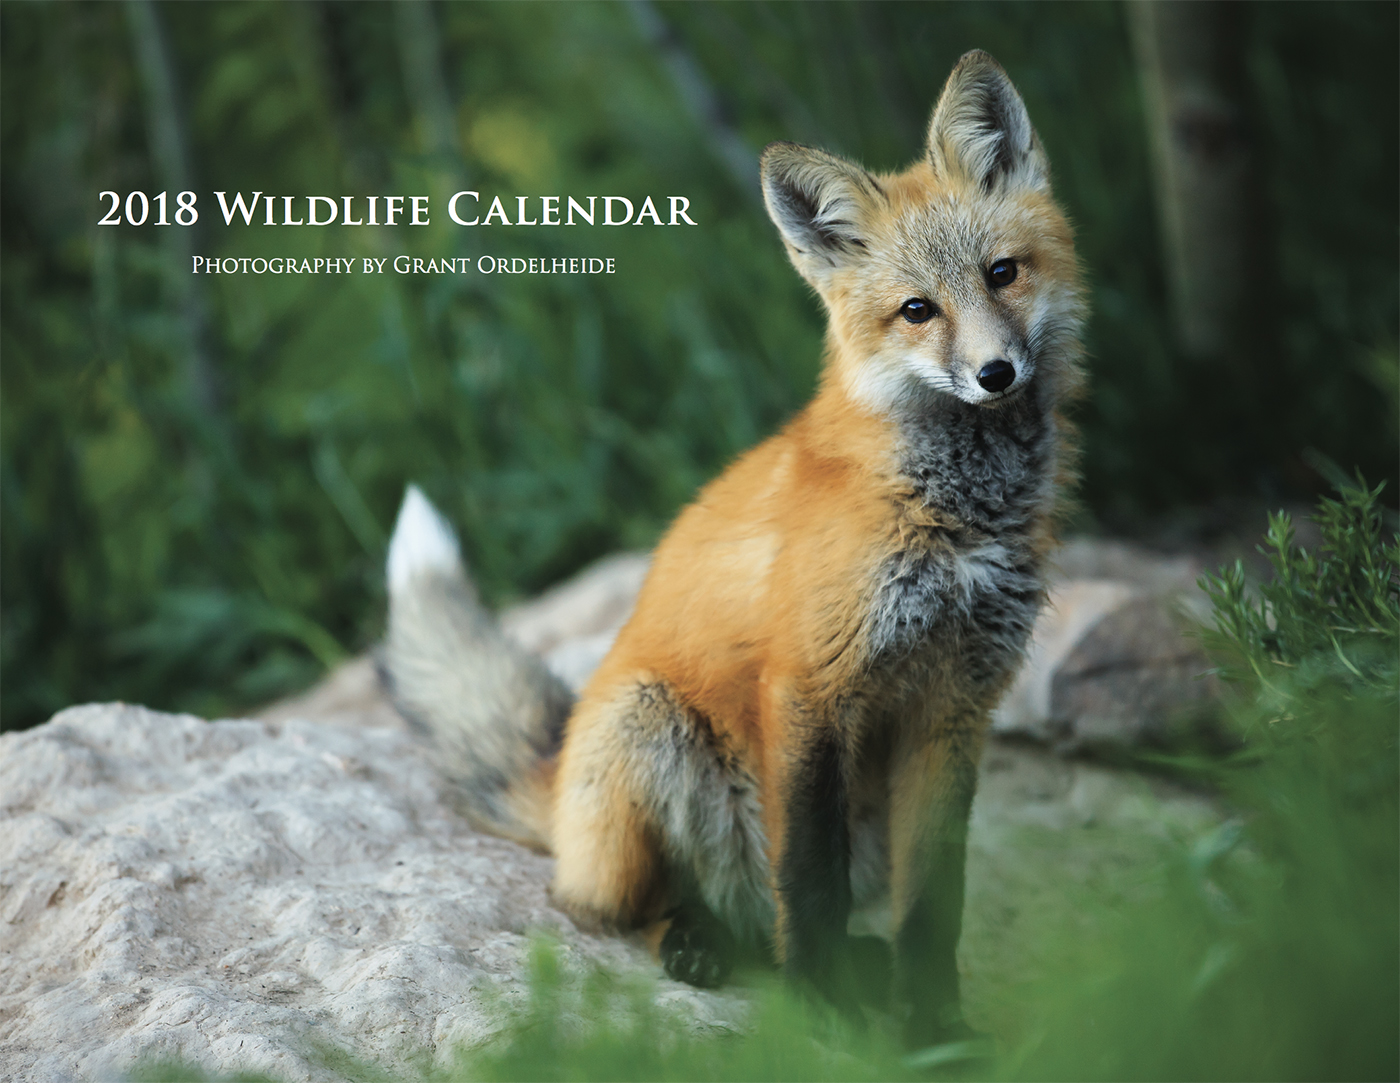 Wildlife photographer calendar 2018 All effects - PhotoFunia: Free pic editor online with